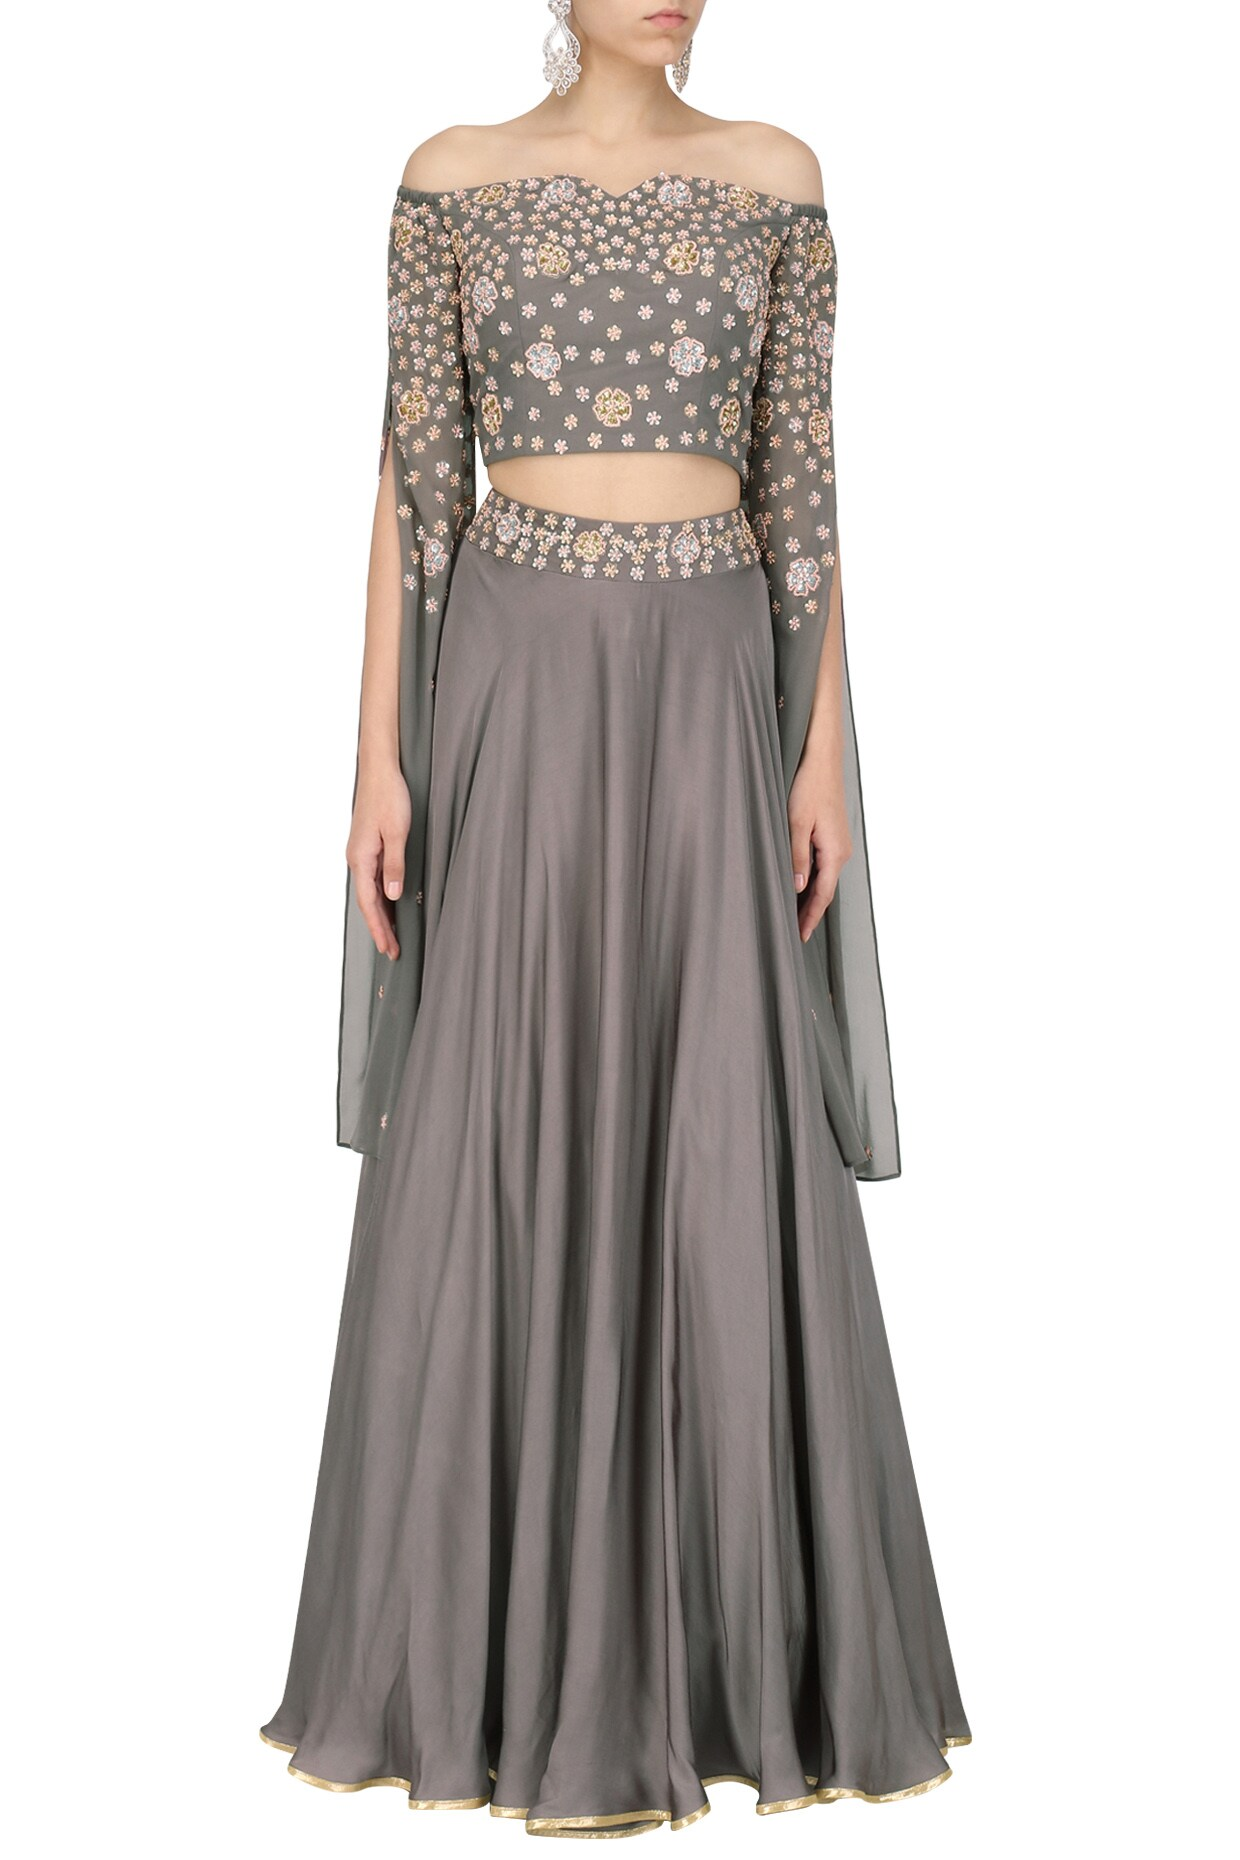 6e51198876 Grey embroidered crop top and skirt set available only at Pernia's Pop Up  Shop.